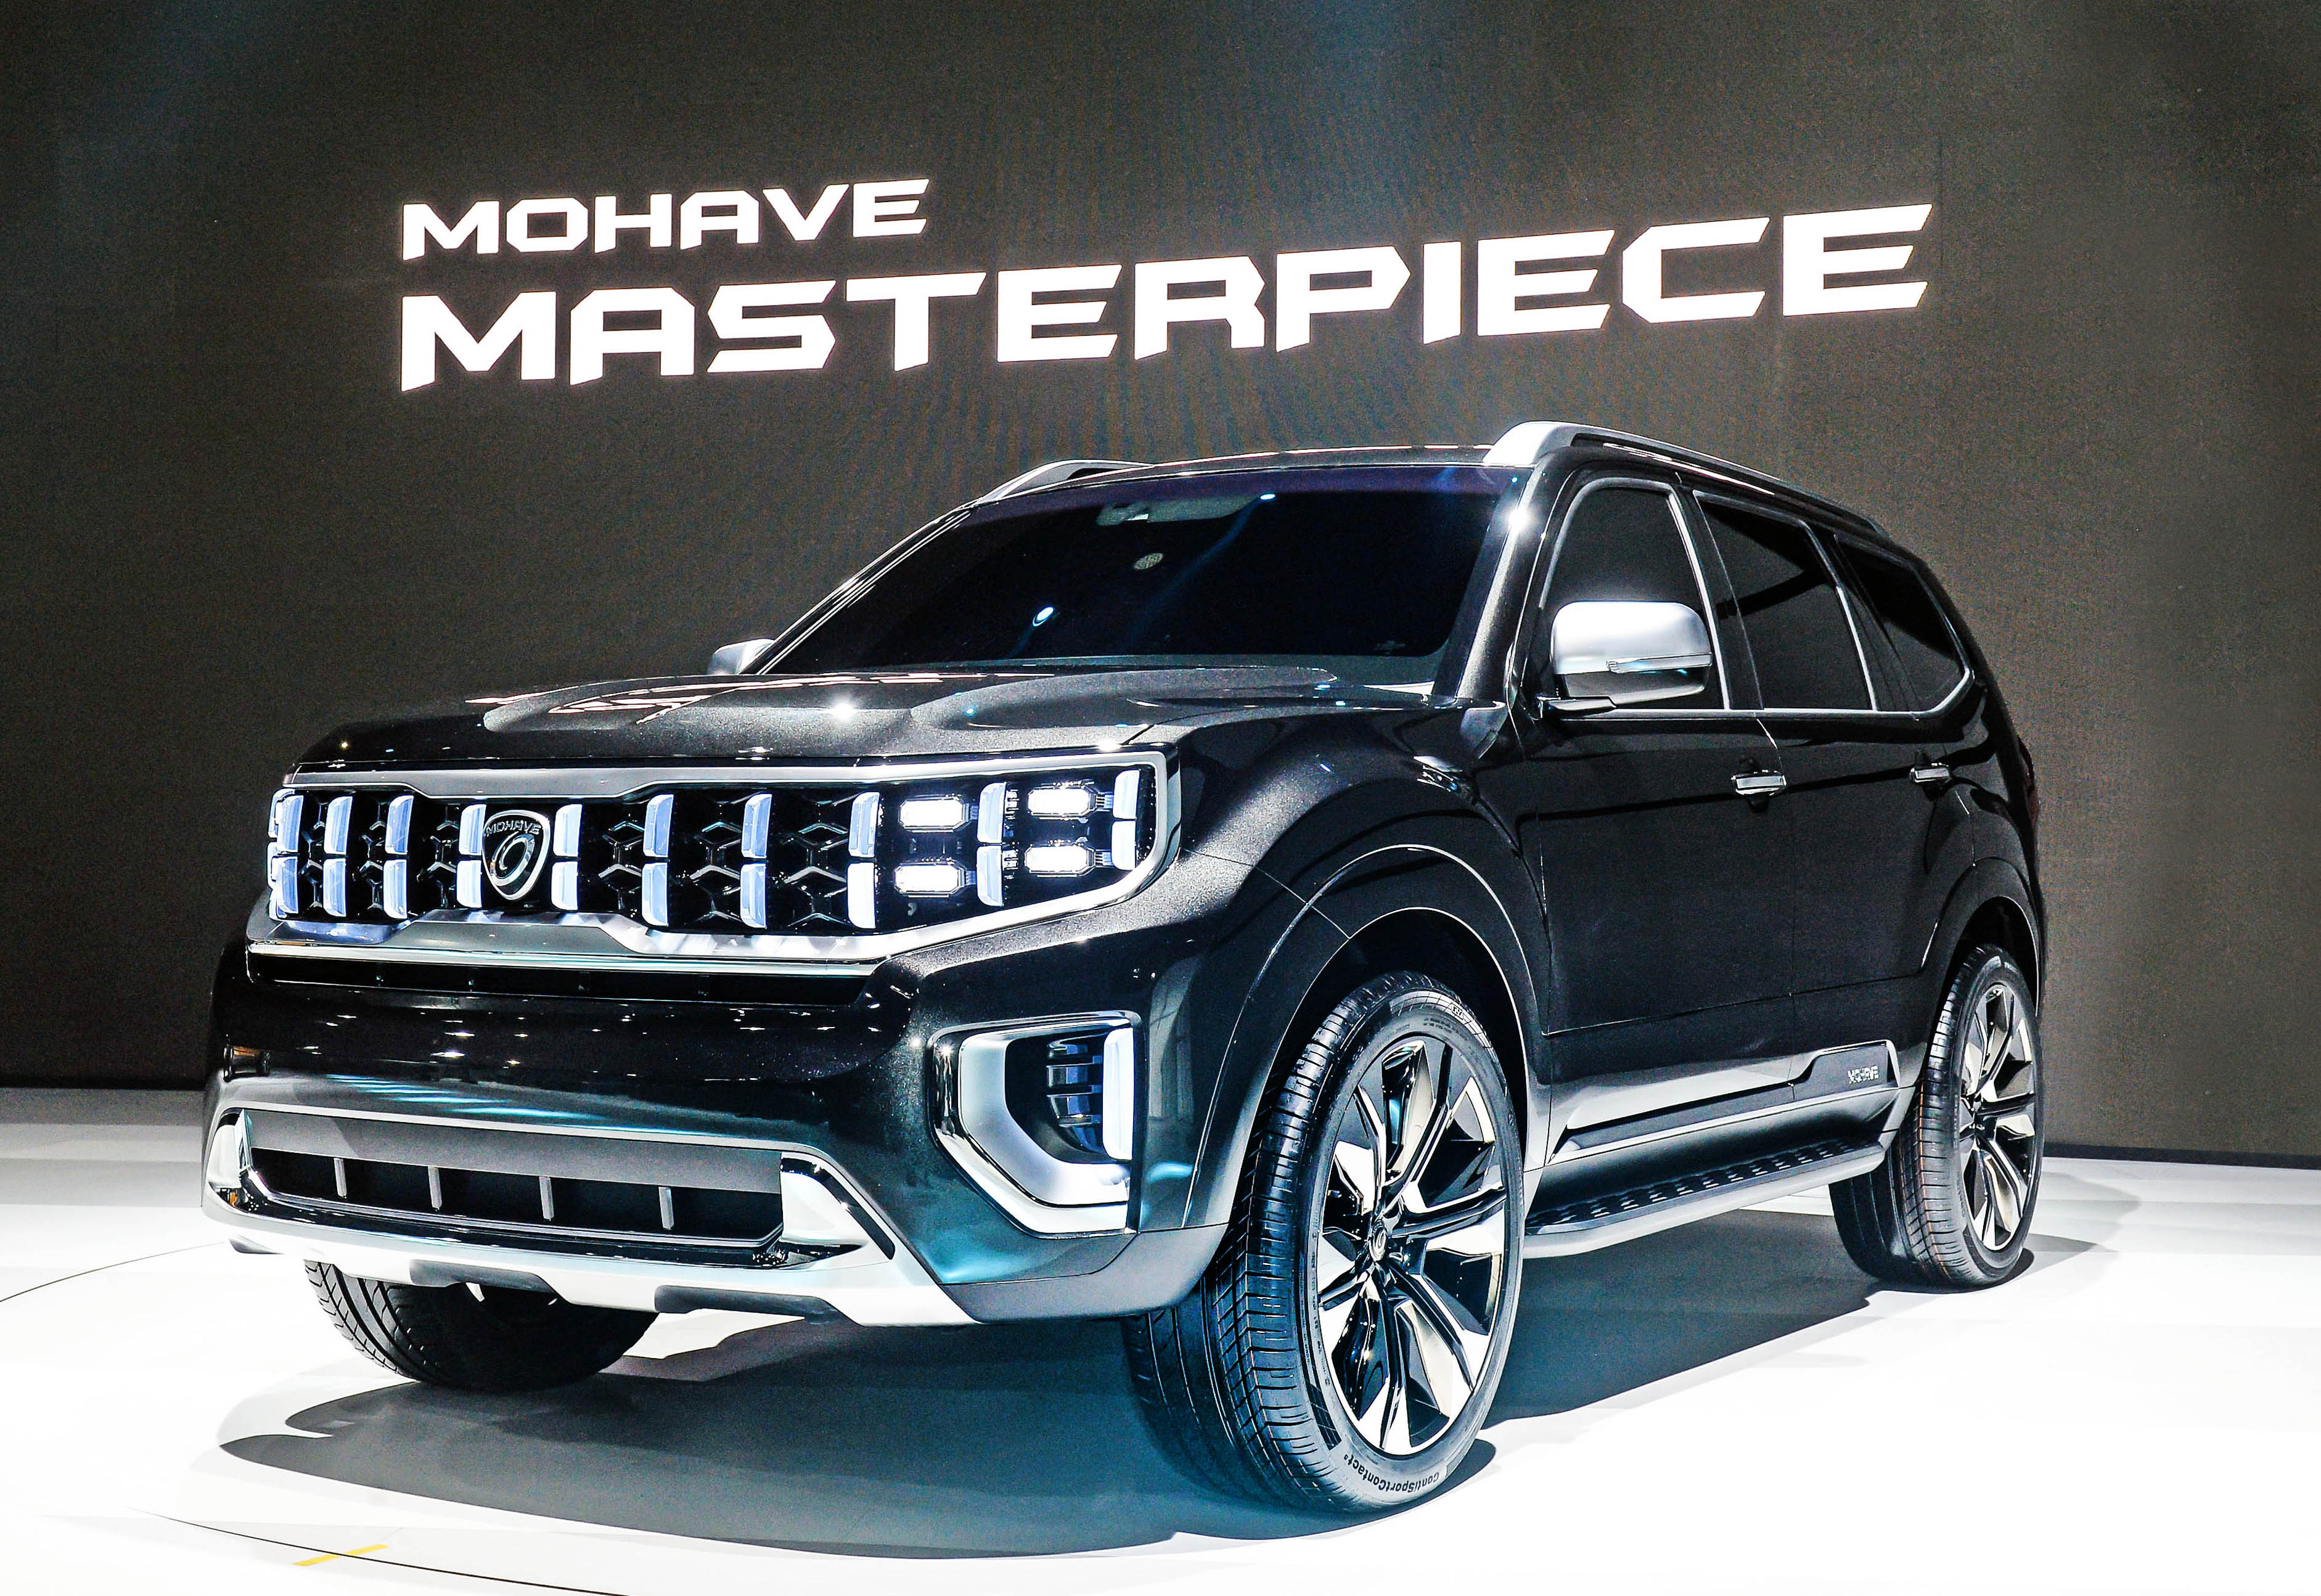 2020 Kia Mohave Images